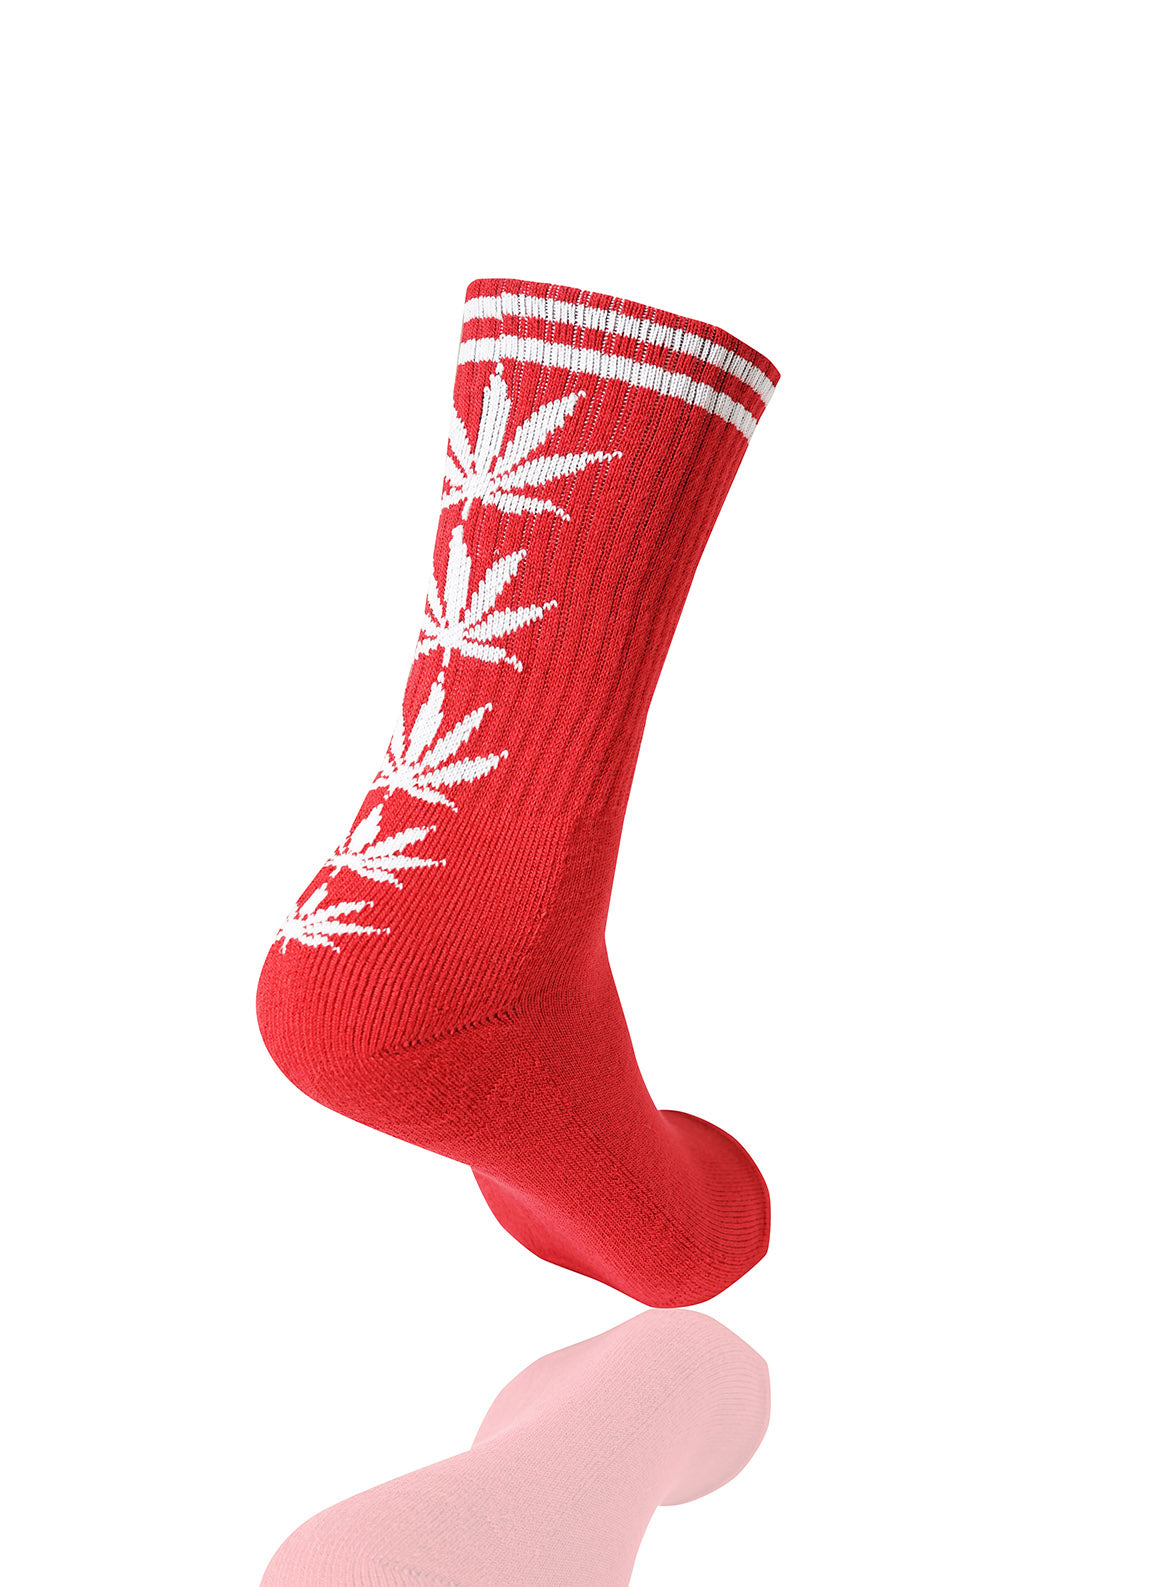 REDWHITE Mad Toro 5 Leaves Graphic Socks - URBANCREWS